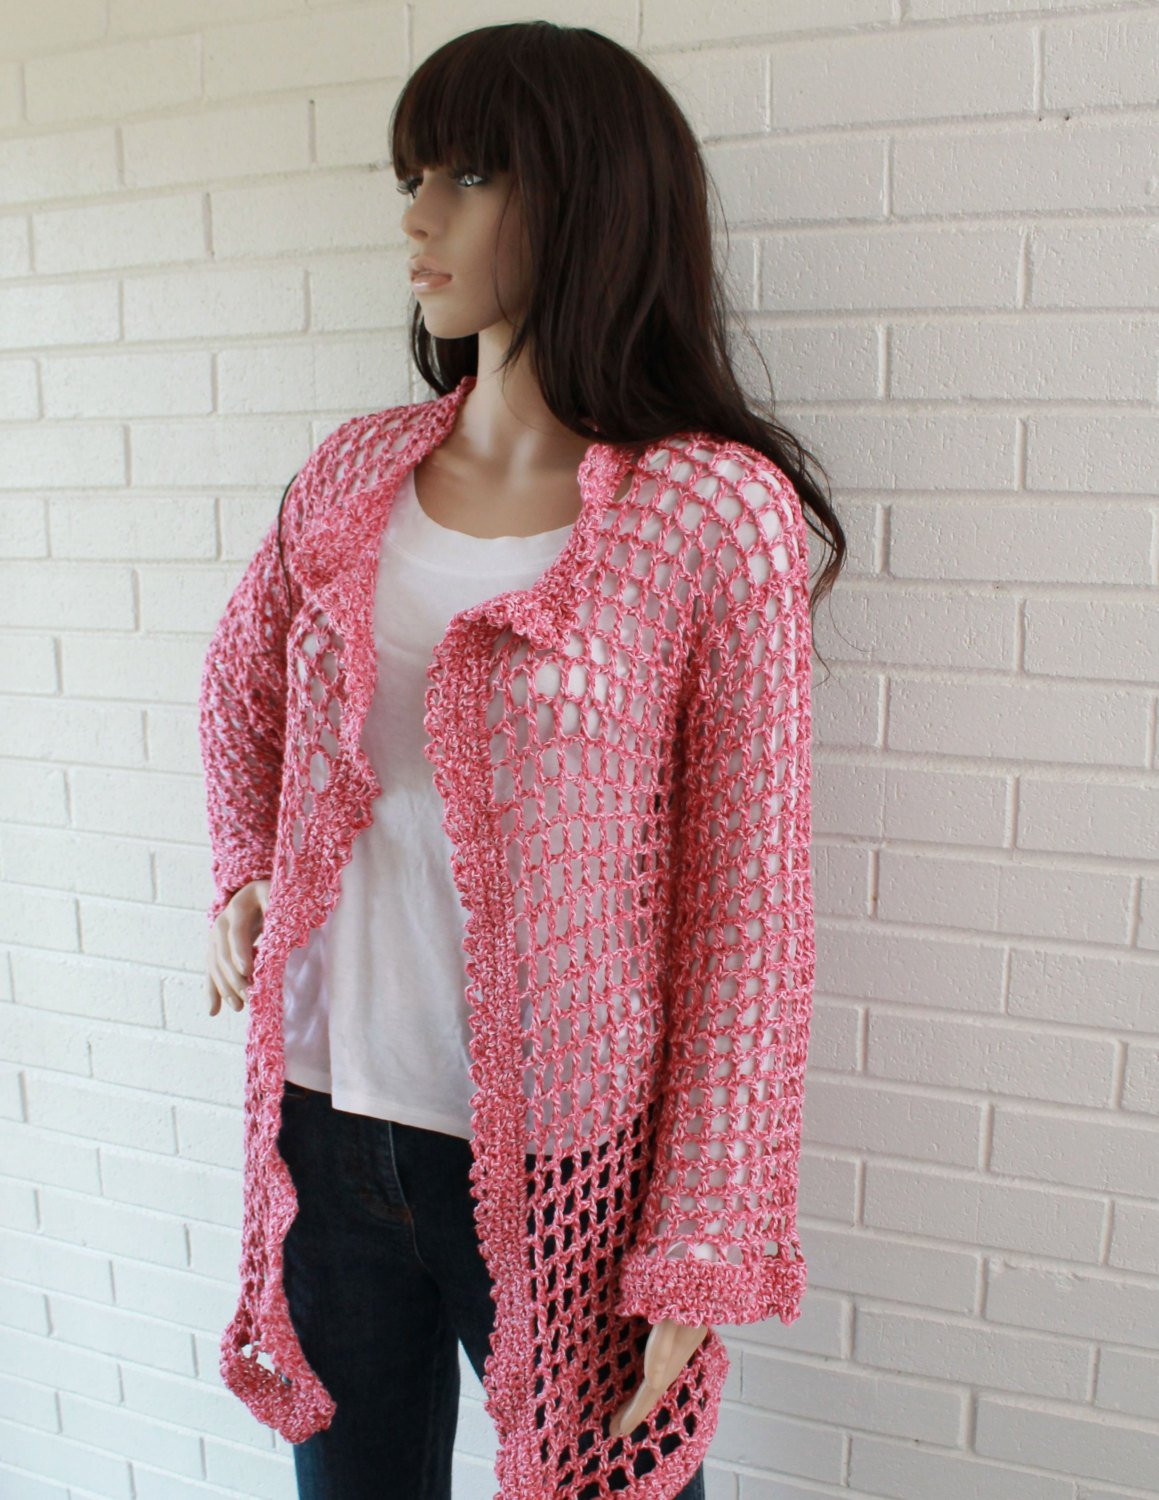 Awesome Super Easy Filet Cardigan Crochet Pattern Pdf Easy Crochet Sweater Pattern Of Elegant Telluride Easy Knit Kimono Pattern – Mama In A Stitch Easy Crochet Sweater Pattern